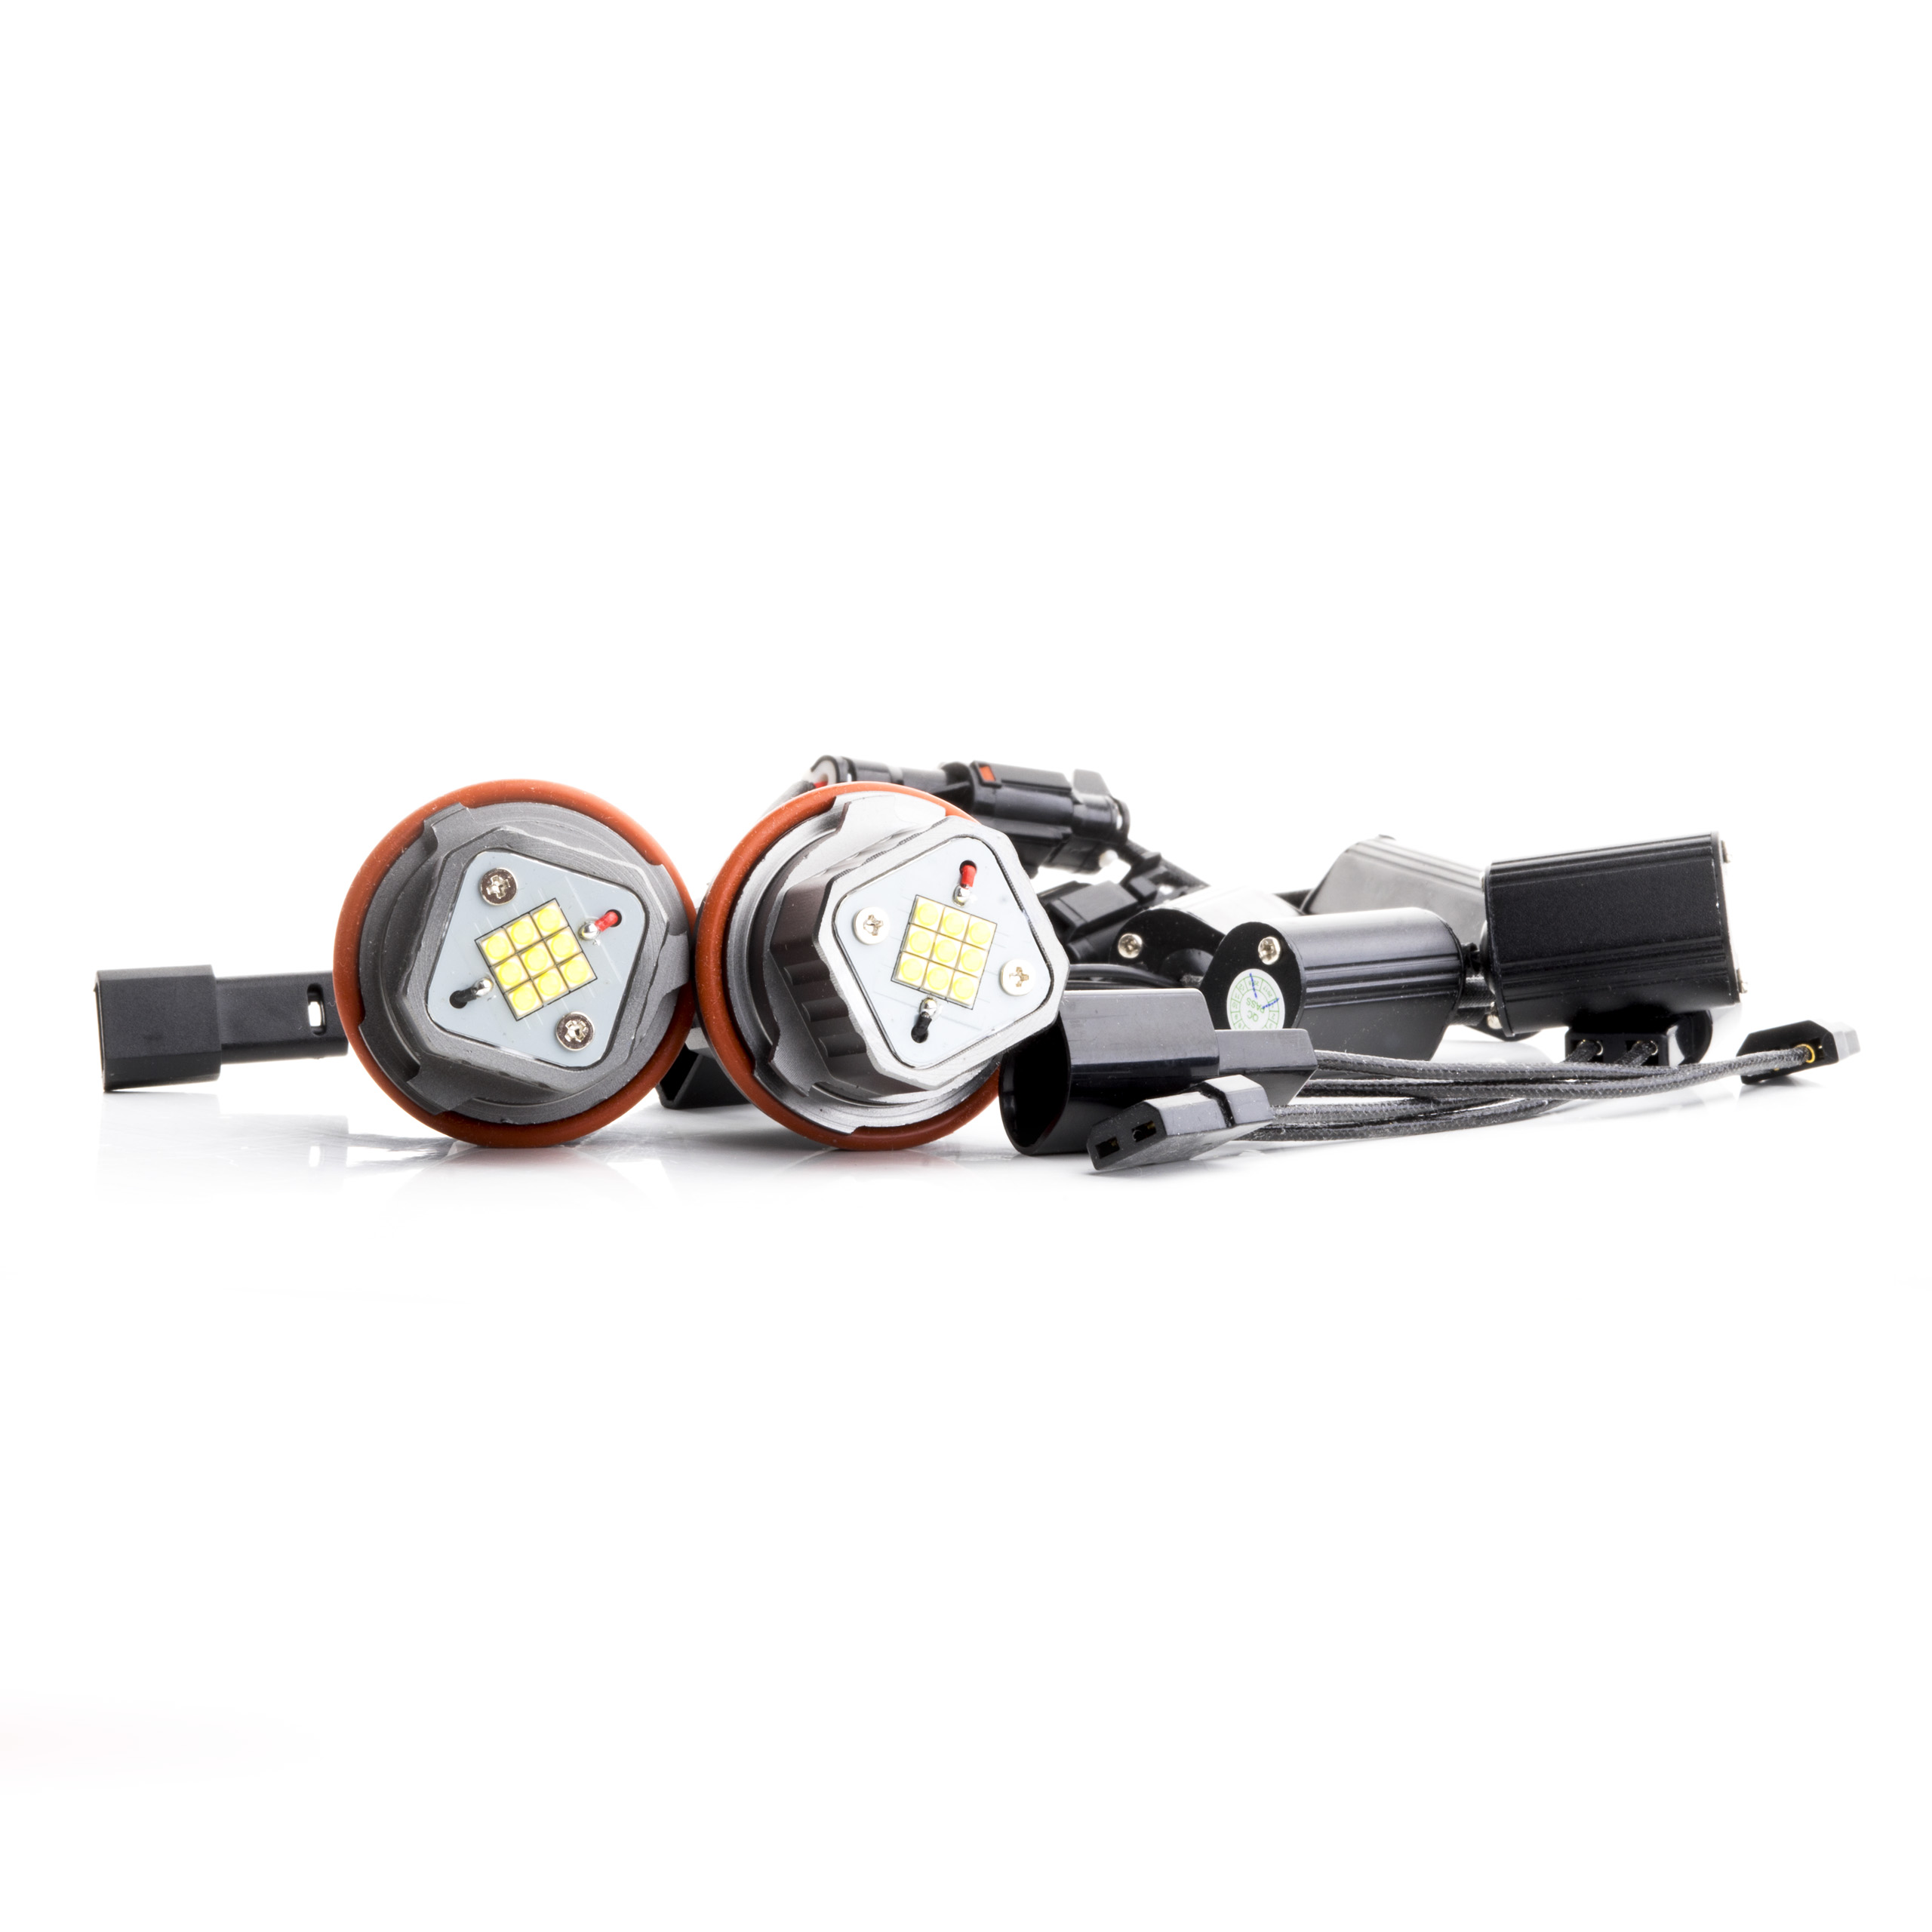 LED Markery 2 x 80W (OSRAM) do kroužků BMW 5 E39 FL (2000-2003)